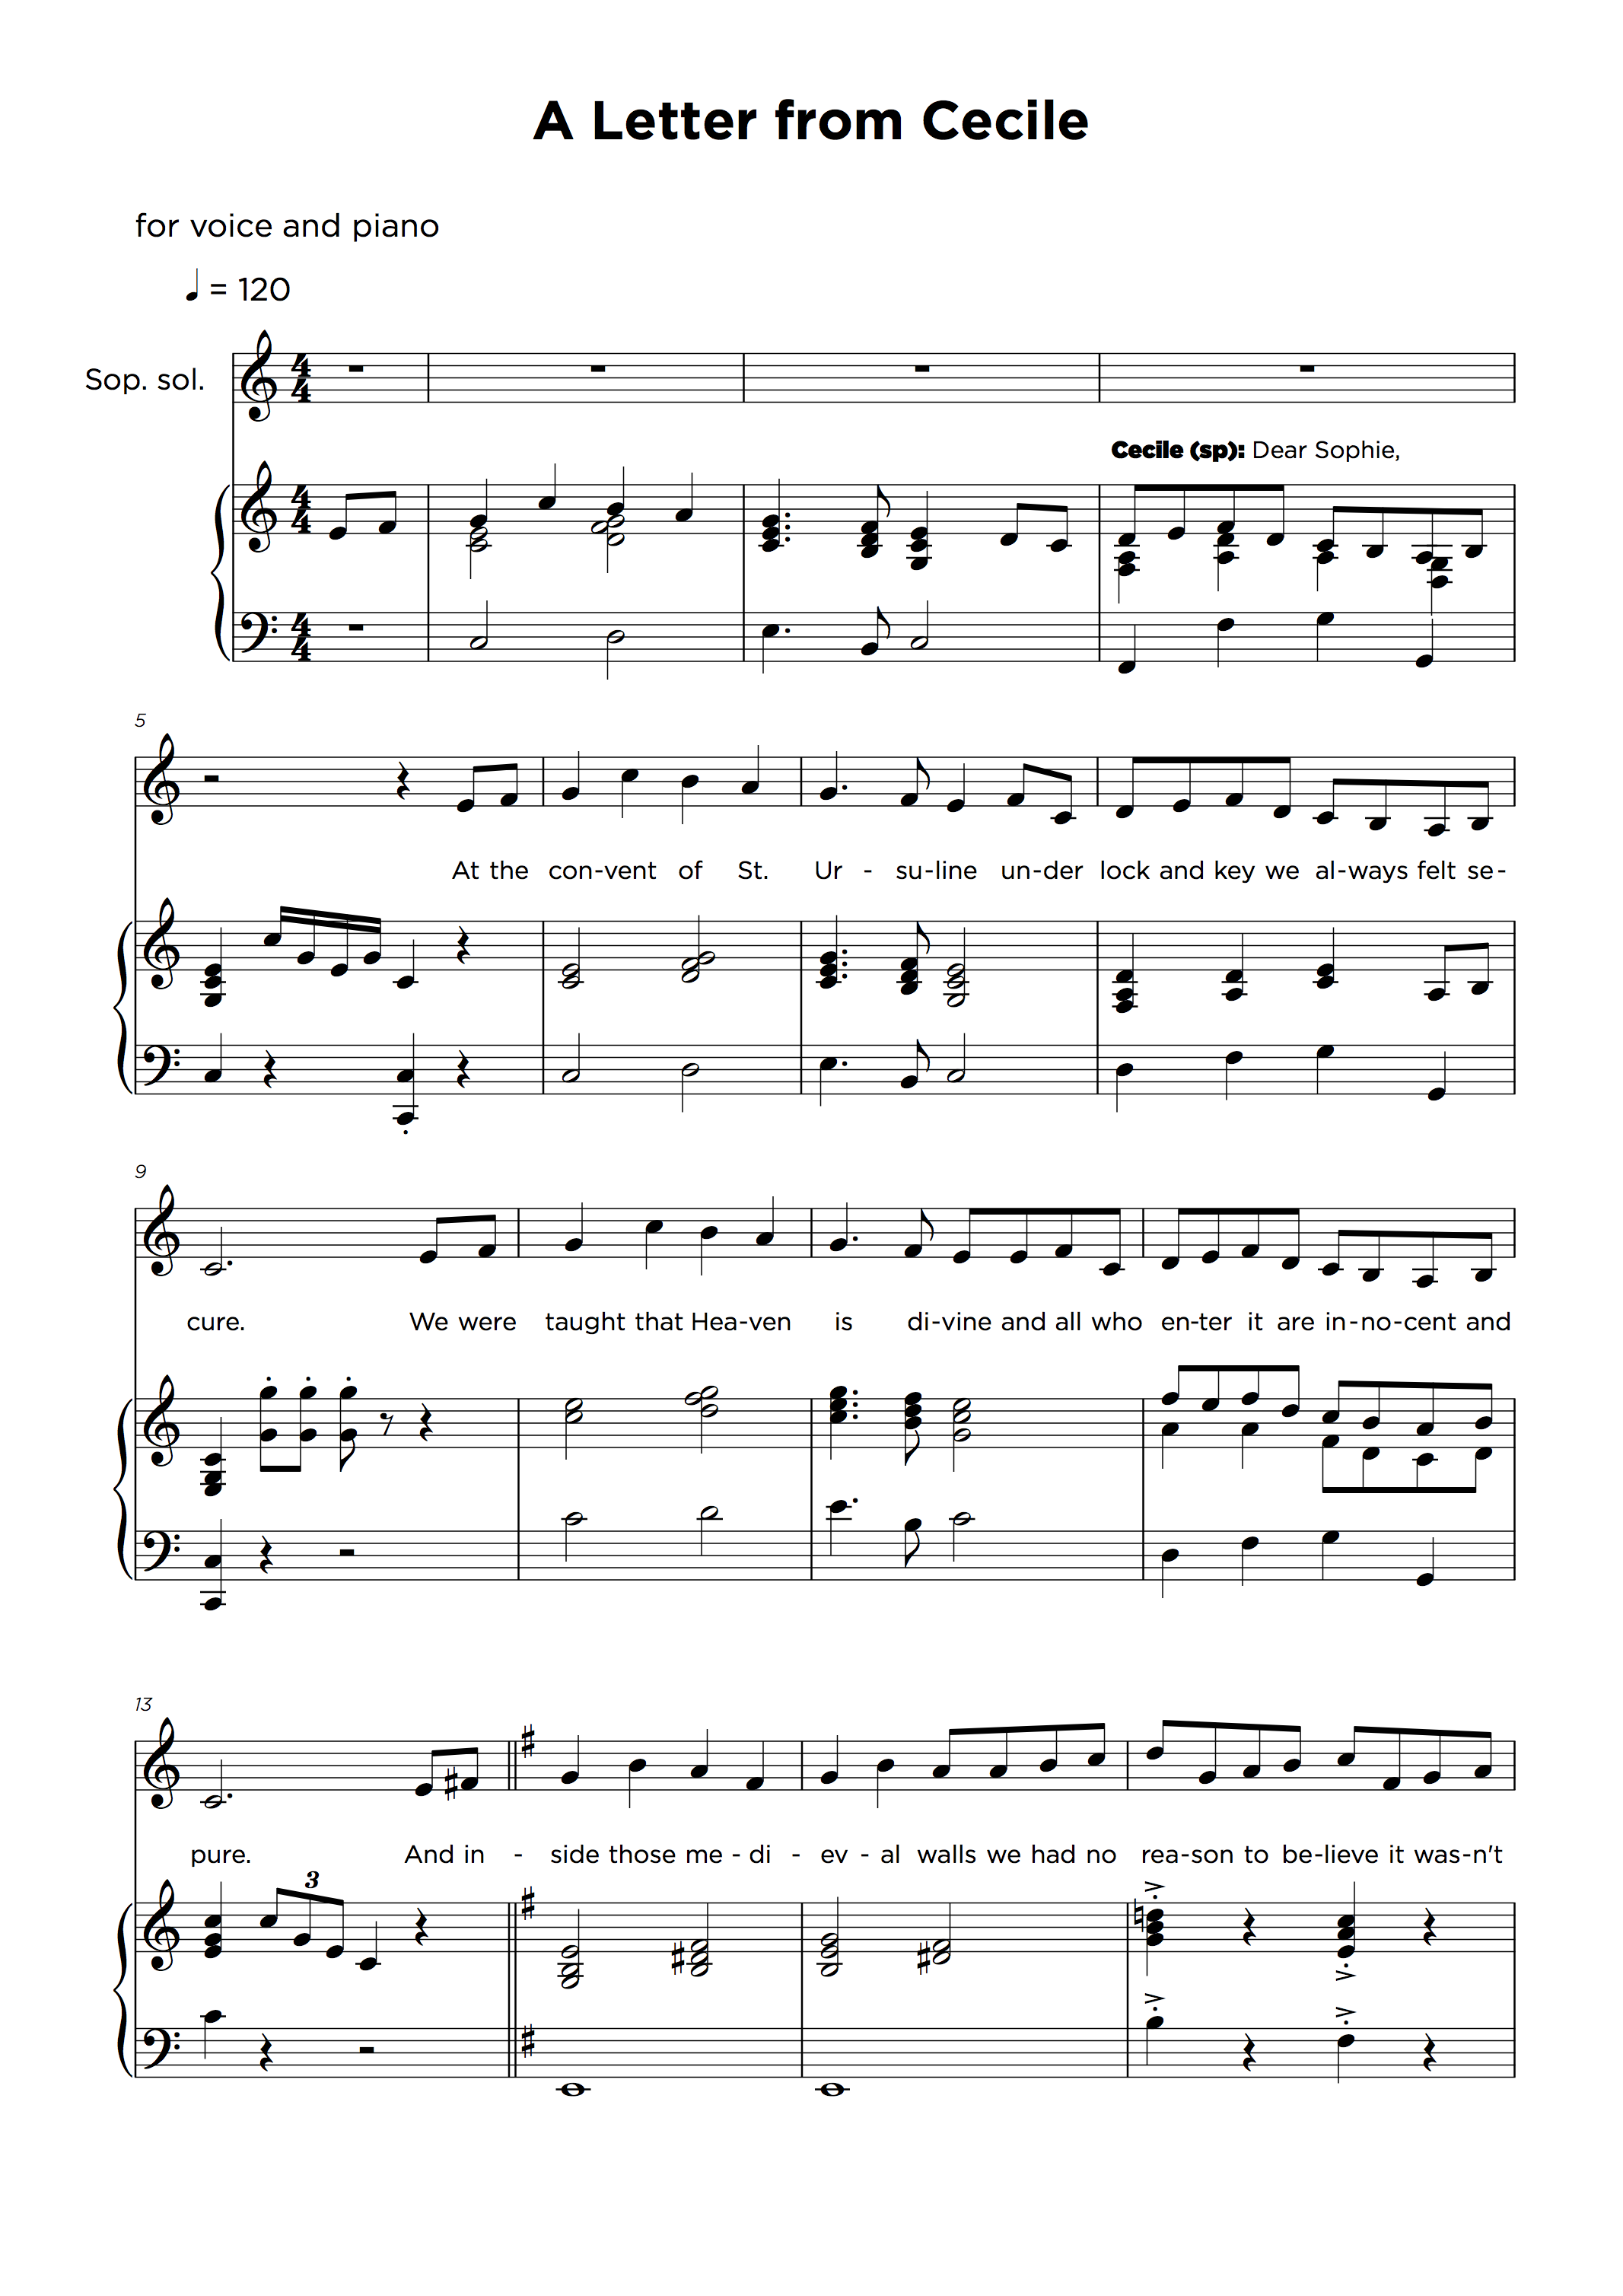 Piano vocal transcriptions